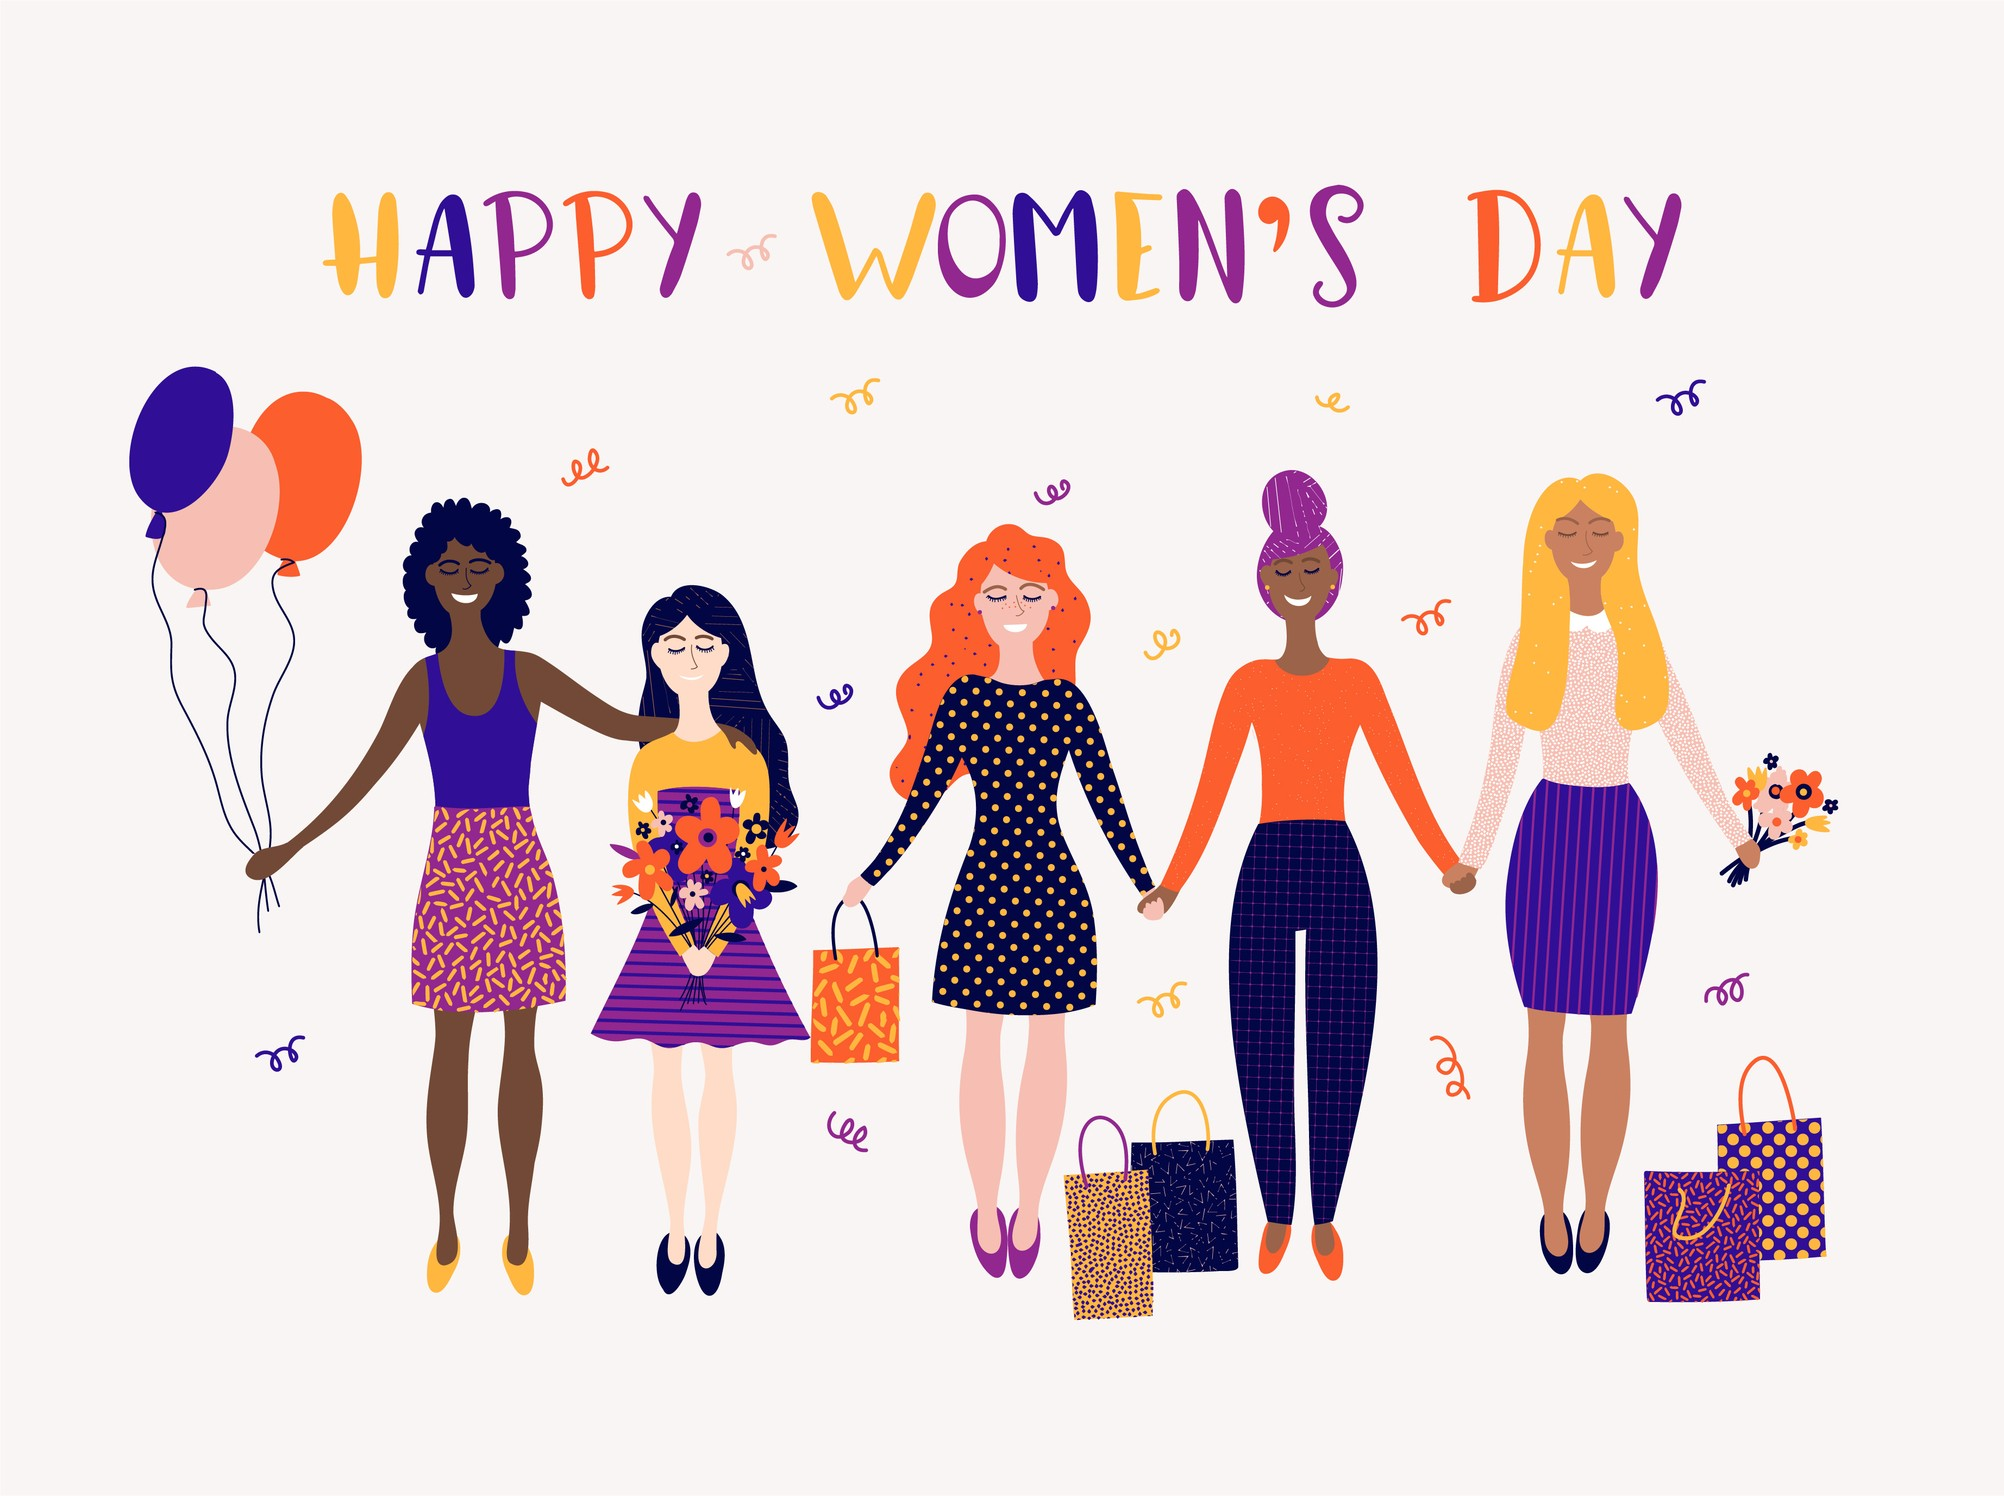 Female CX - Women's Day